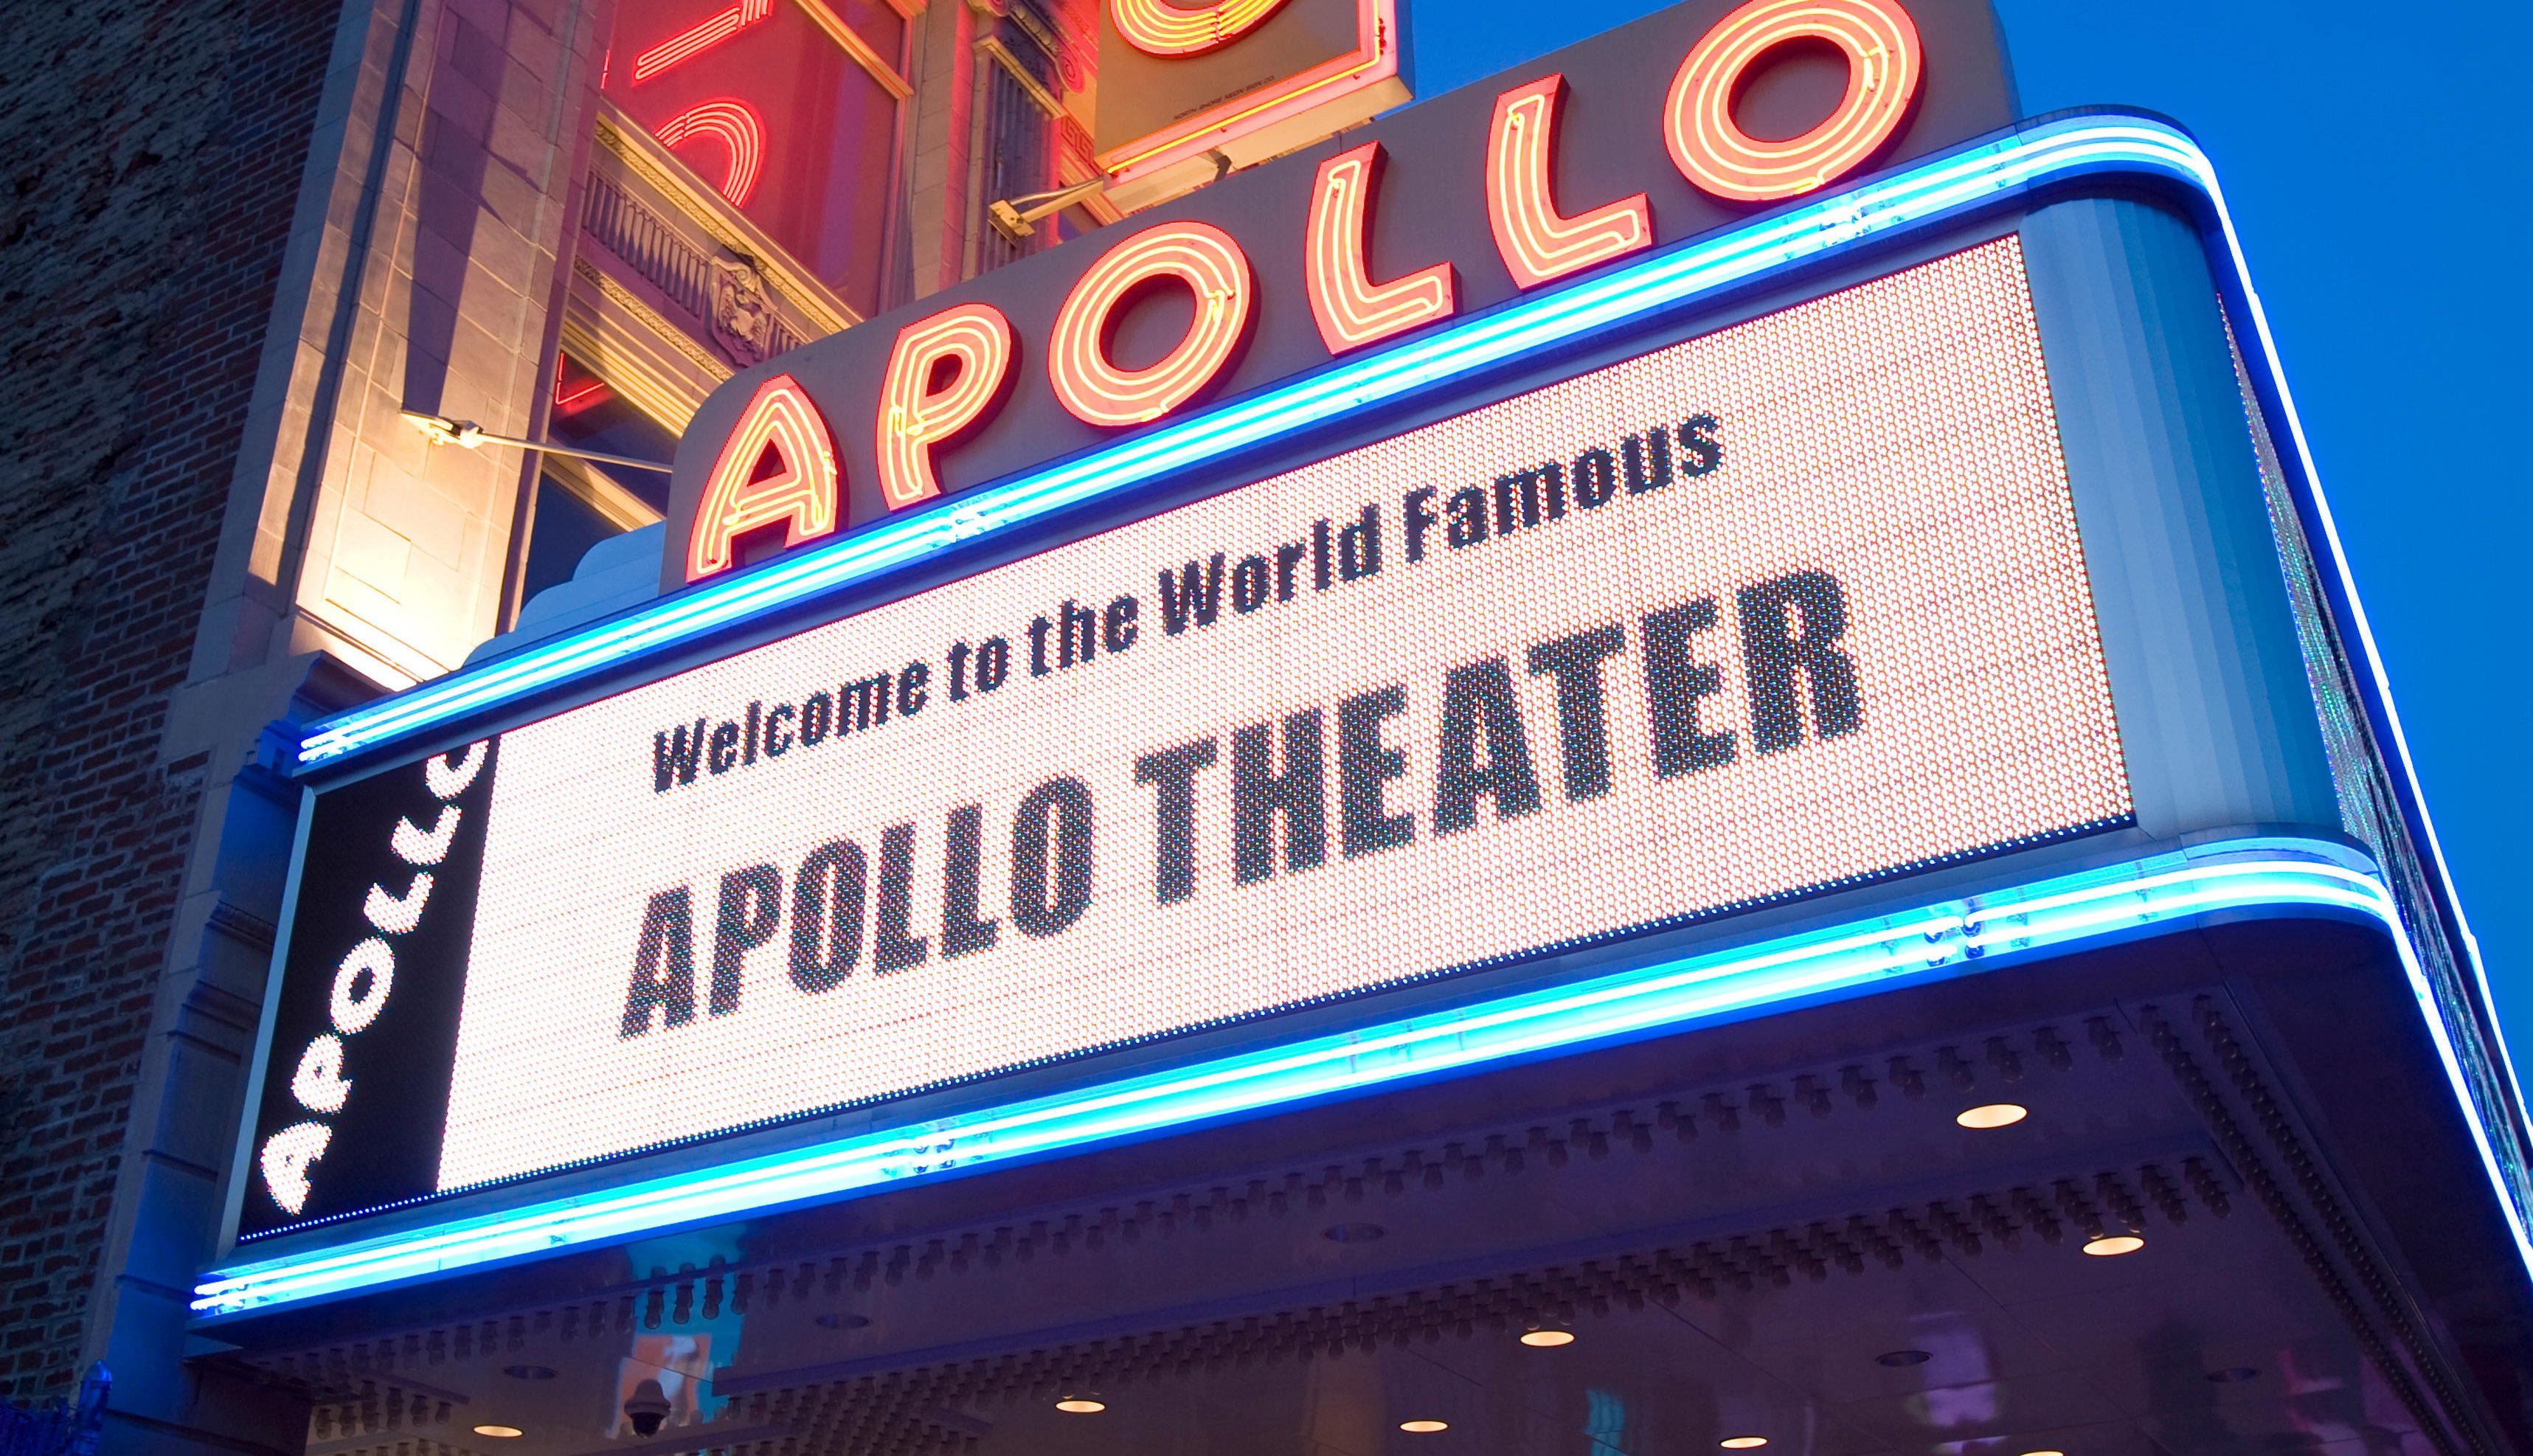 Apollo Theatre marquee